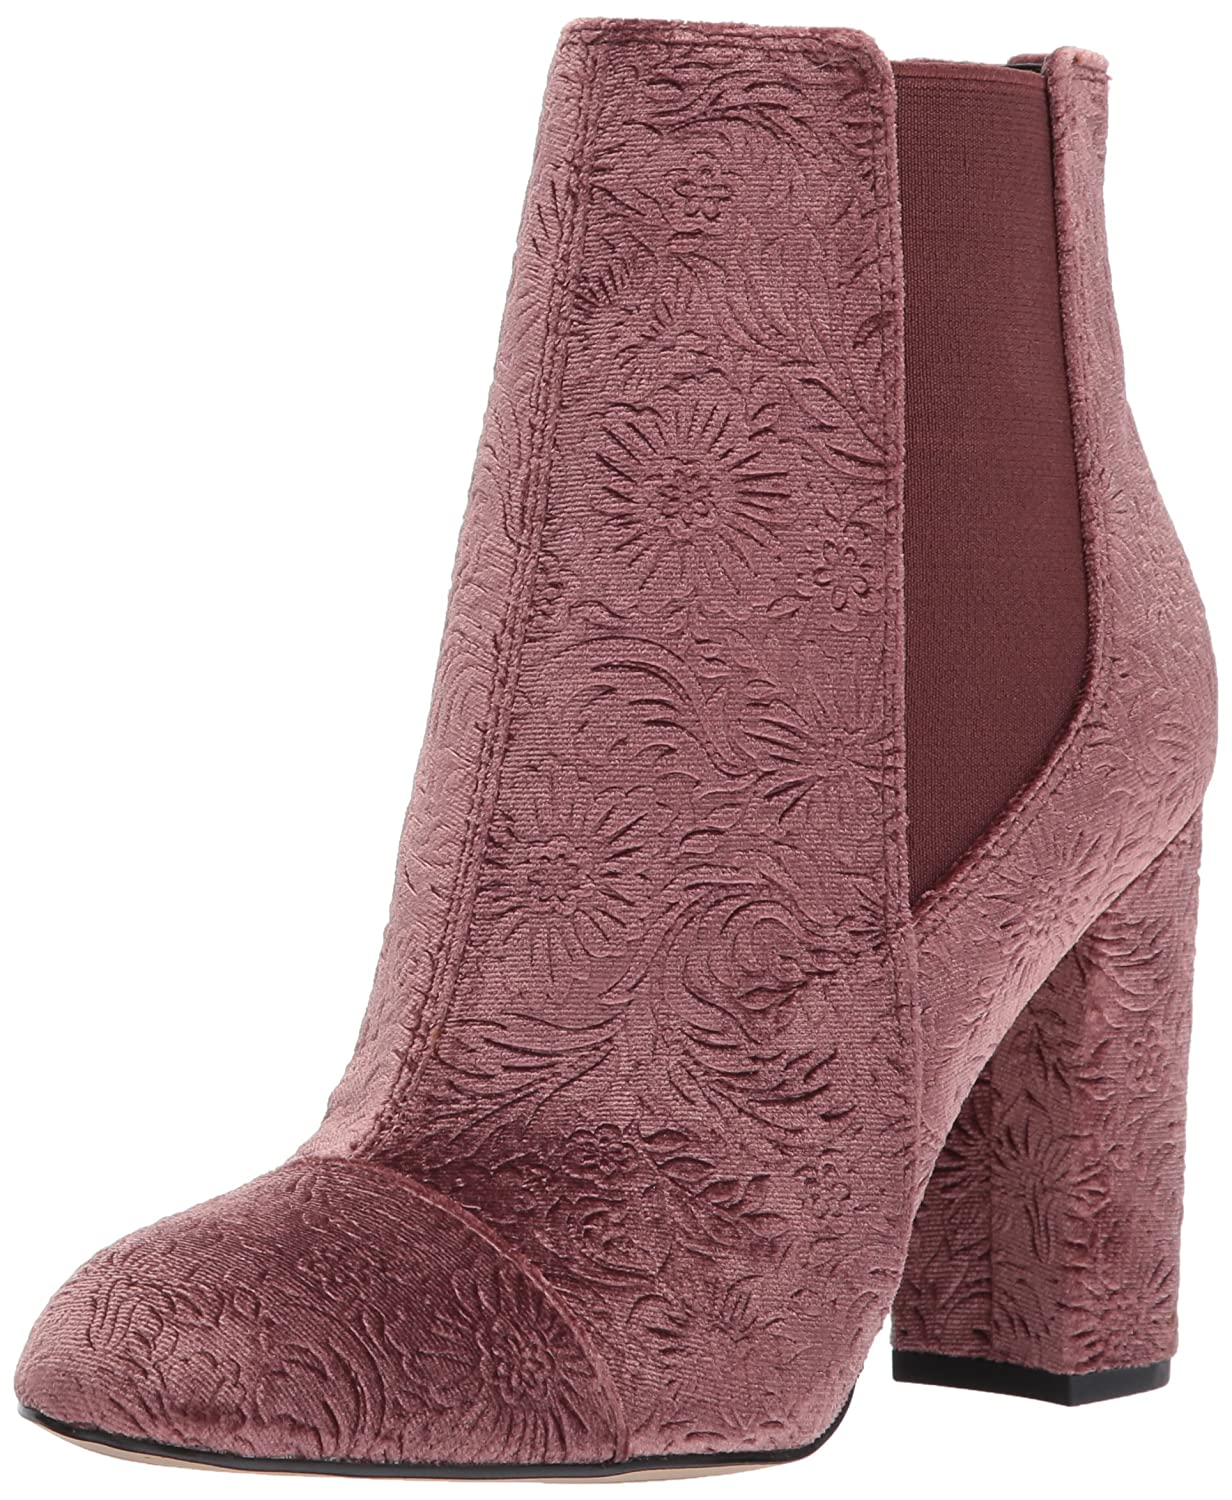 Sam Edelman Women's Case Chelsea Boot B06XC7R3RS 9.5 B(M) US|Mauve Wine Embossed Velvet